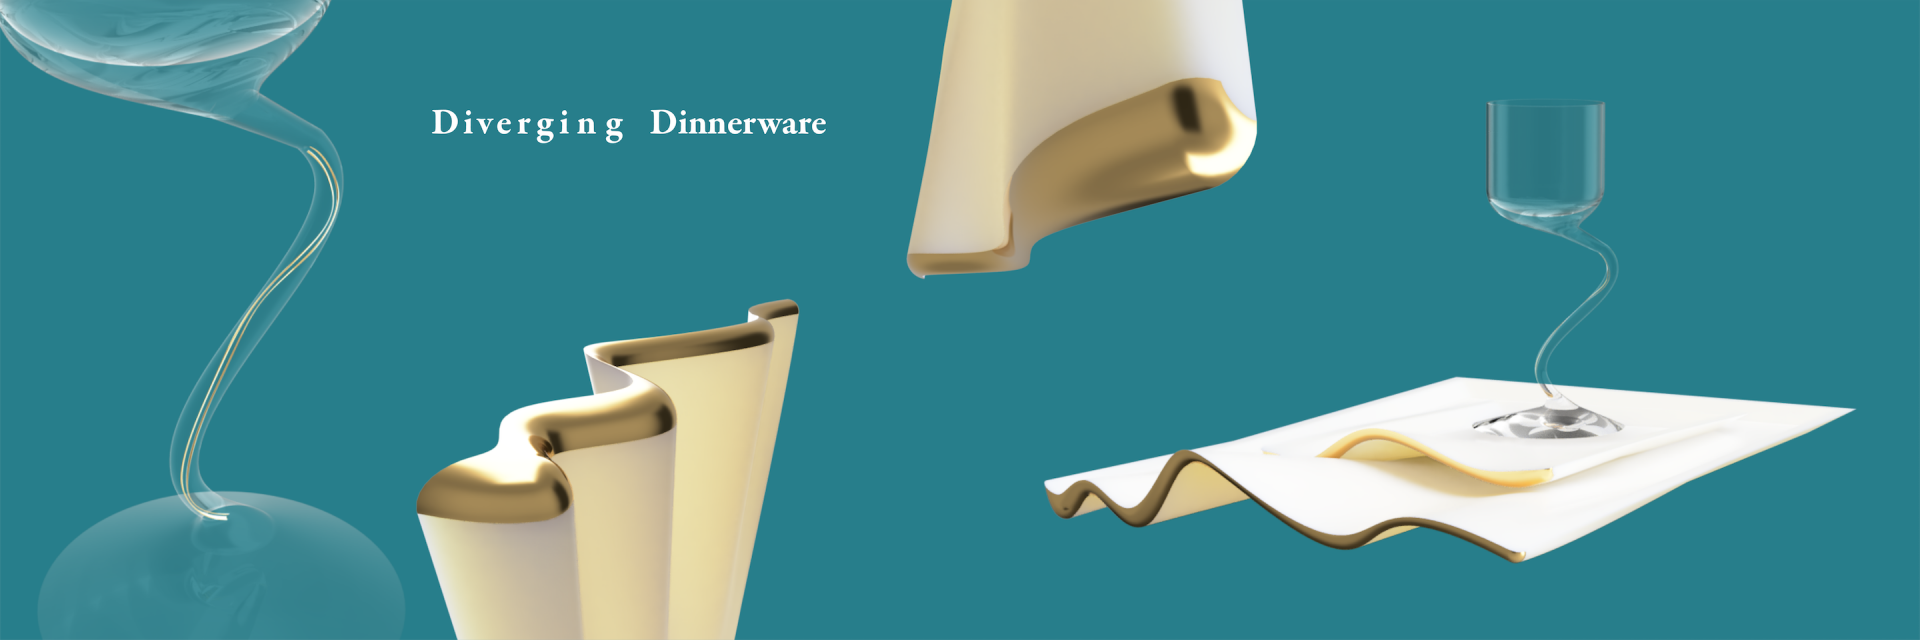 Several renders of curvy dinnerware and a wine glass